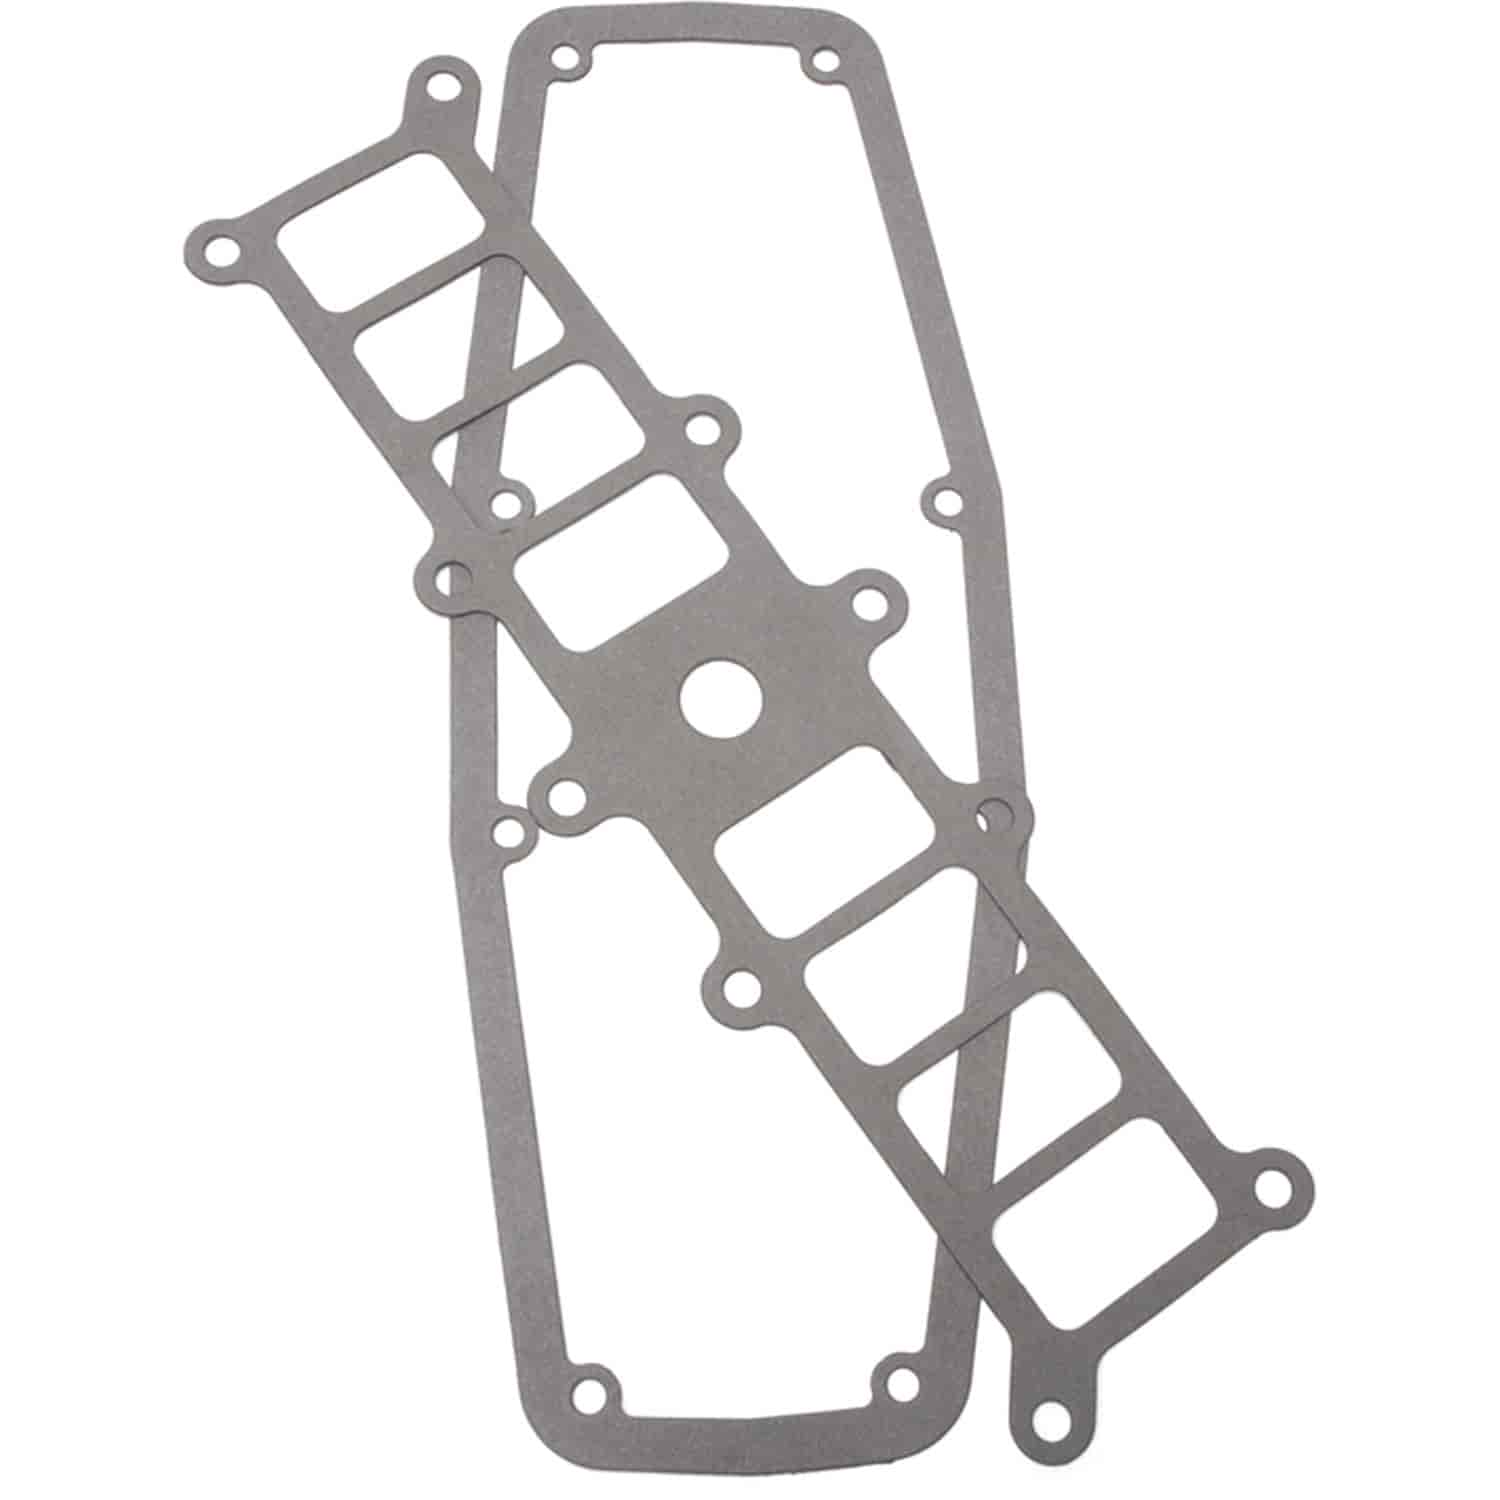 1986-1995 FITS FORD MUSTANG 5.0L 302 THROTTLE BODY GASKET TO EGR